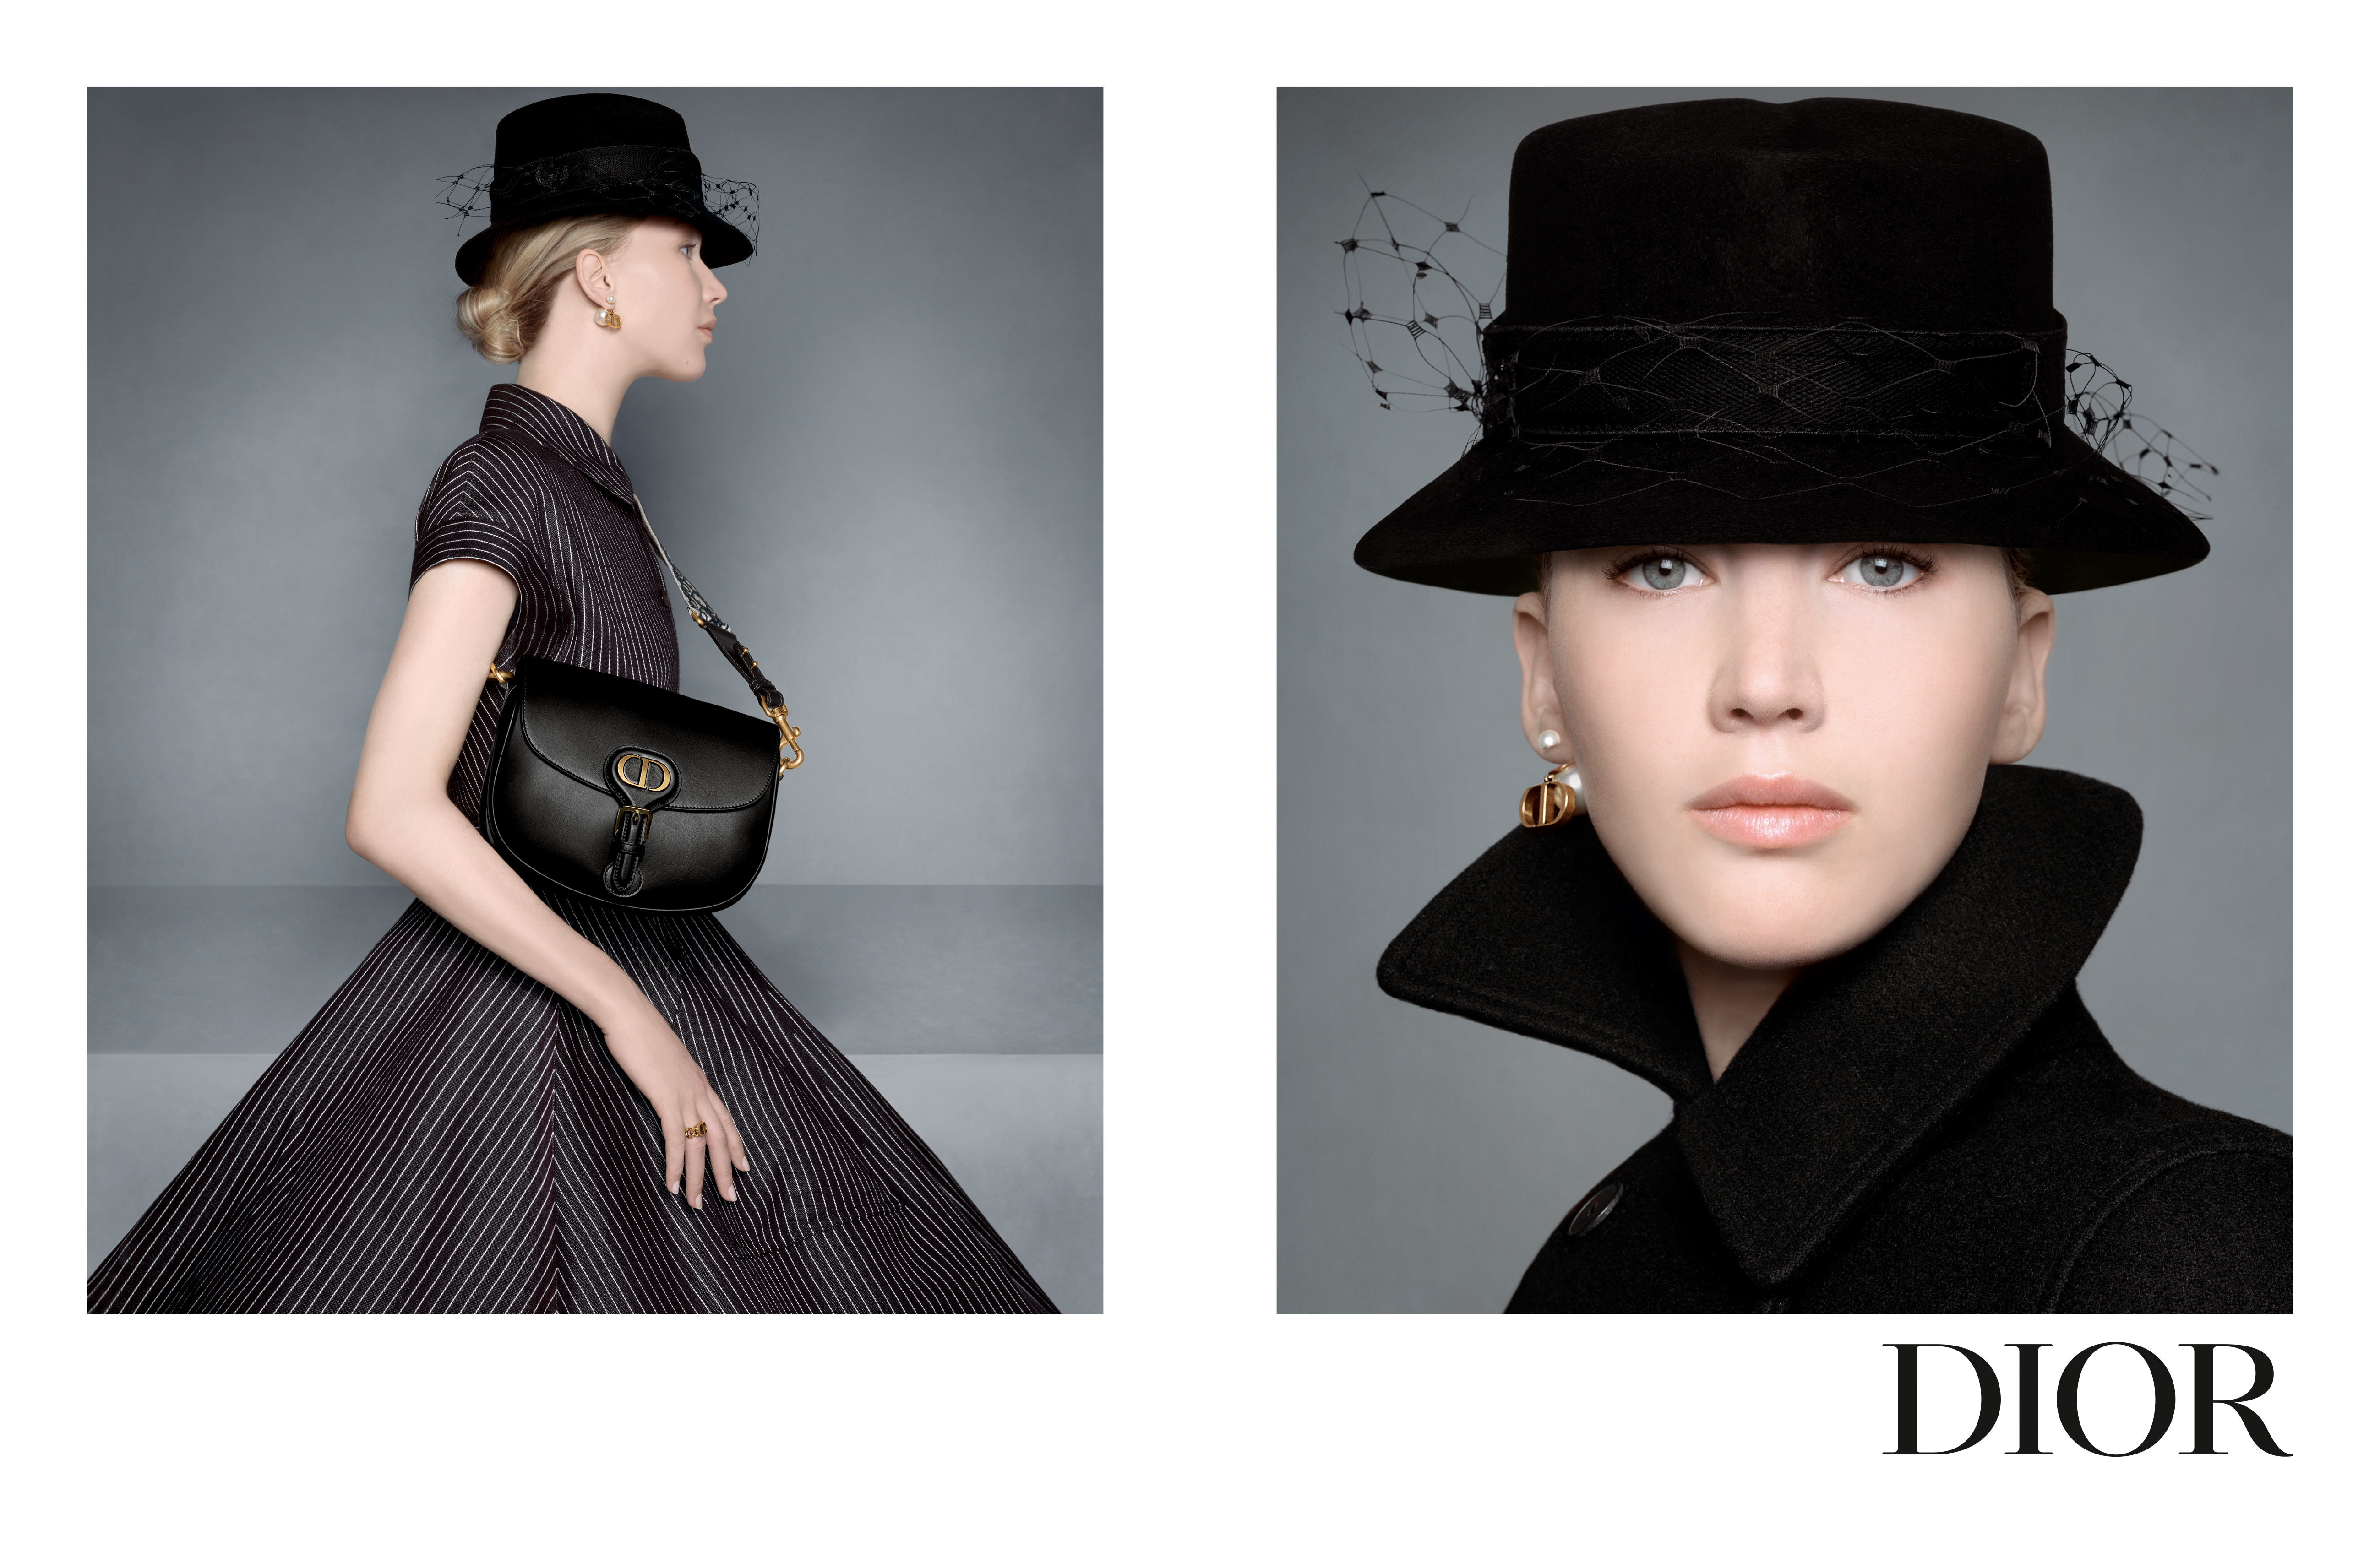 Jennifer Lawrence in the Dior pre-fall campaign. Photographer by Brigitte Niedermair/, Fashion Isabelle Kountoure / Courtesy of Dior